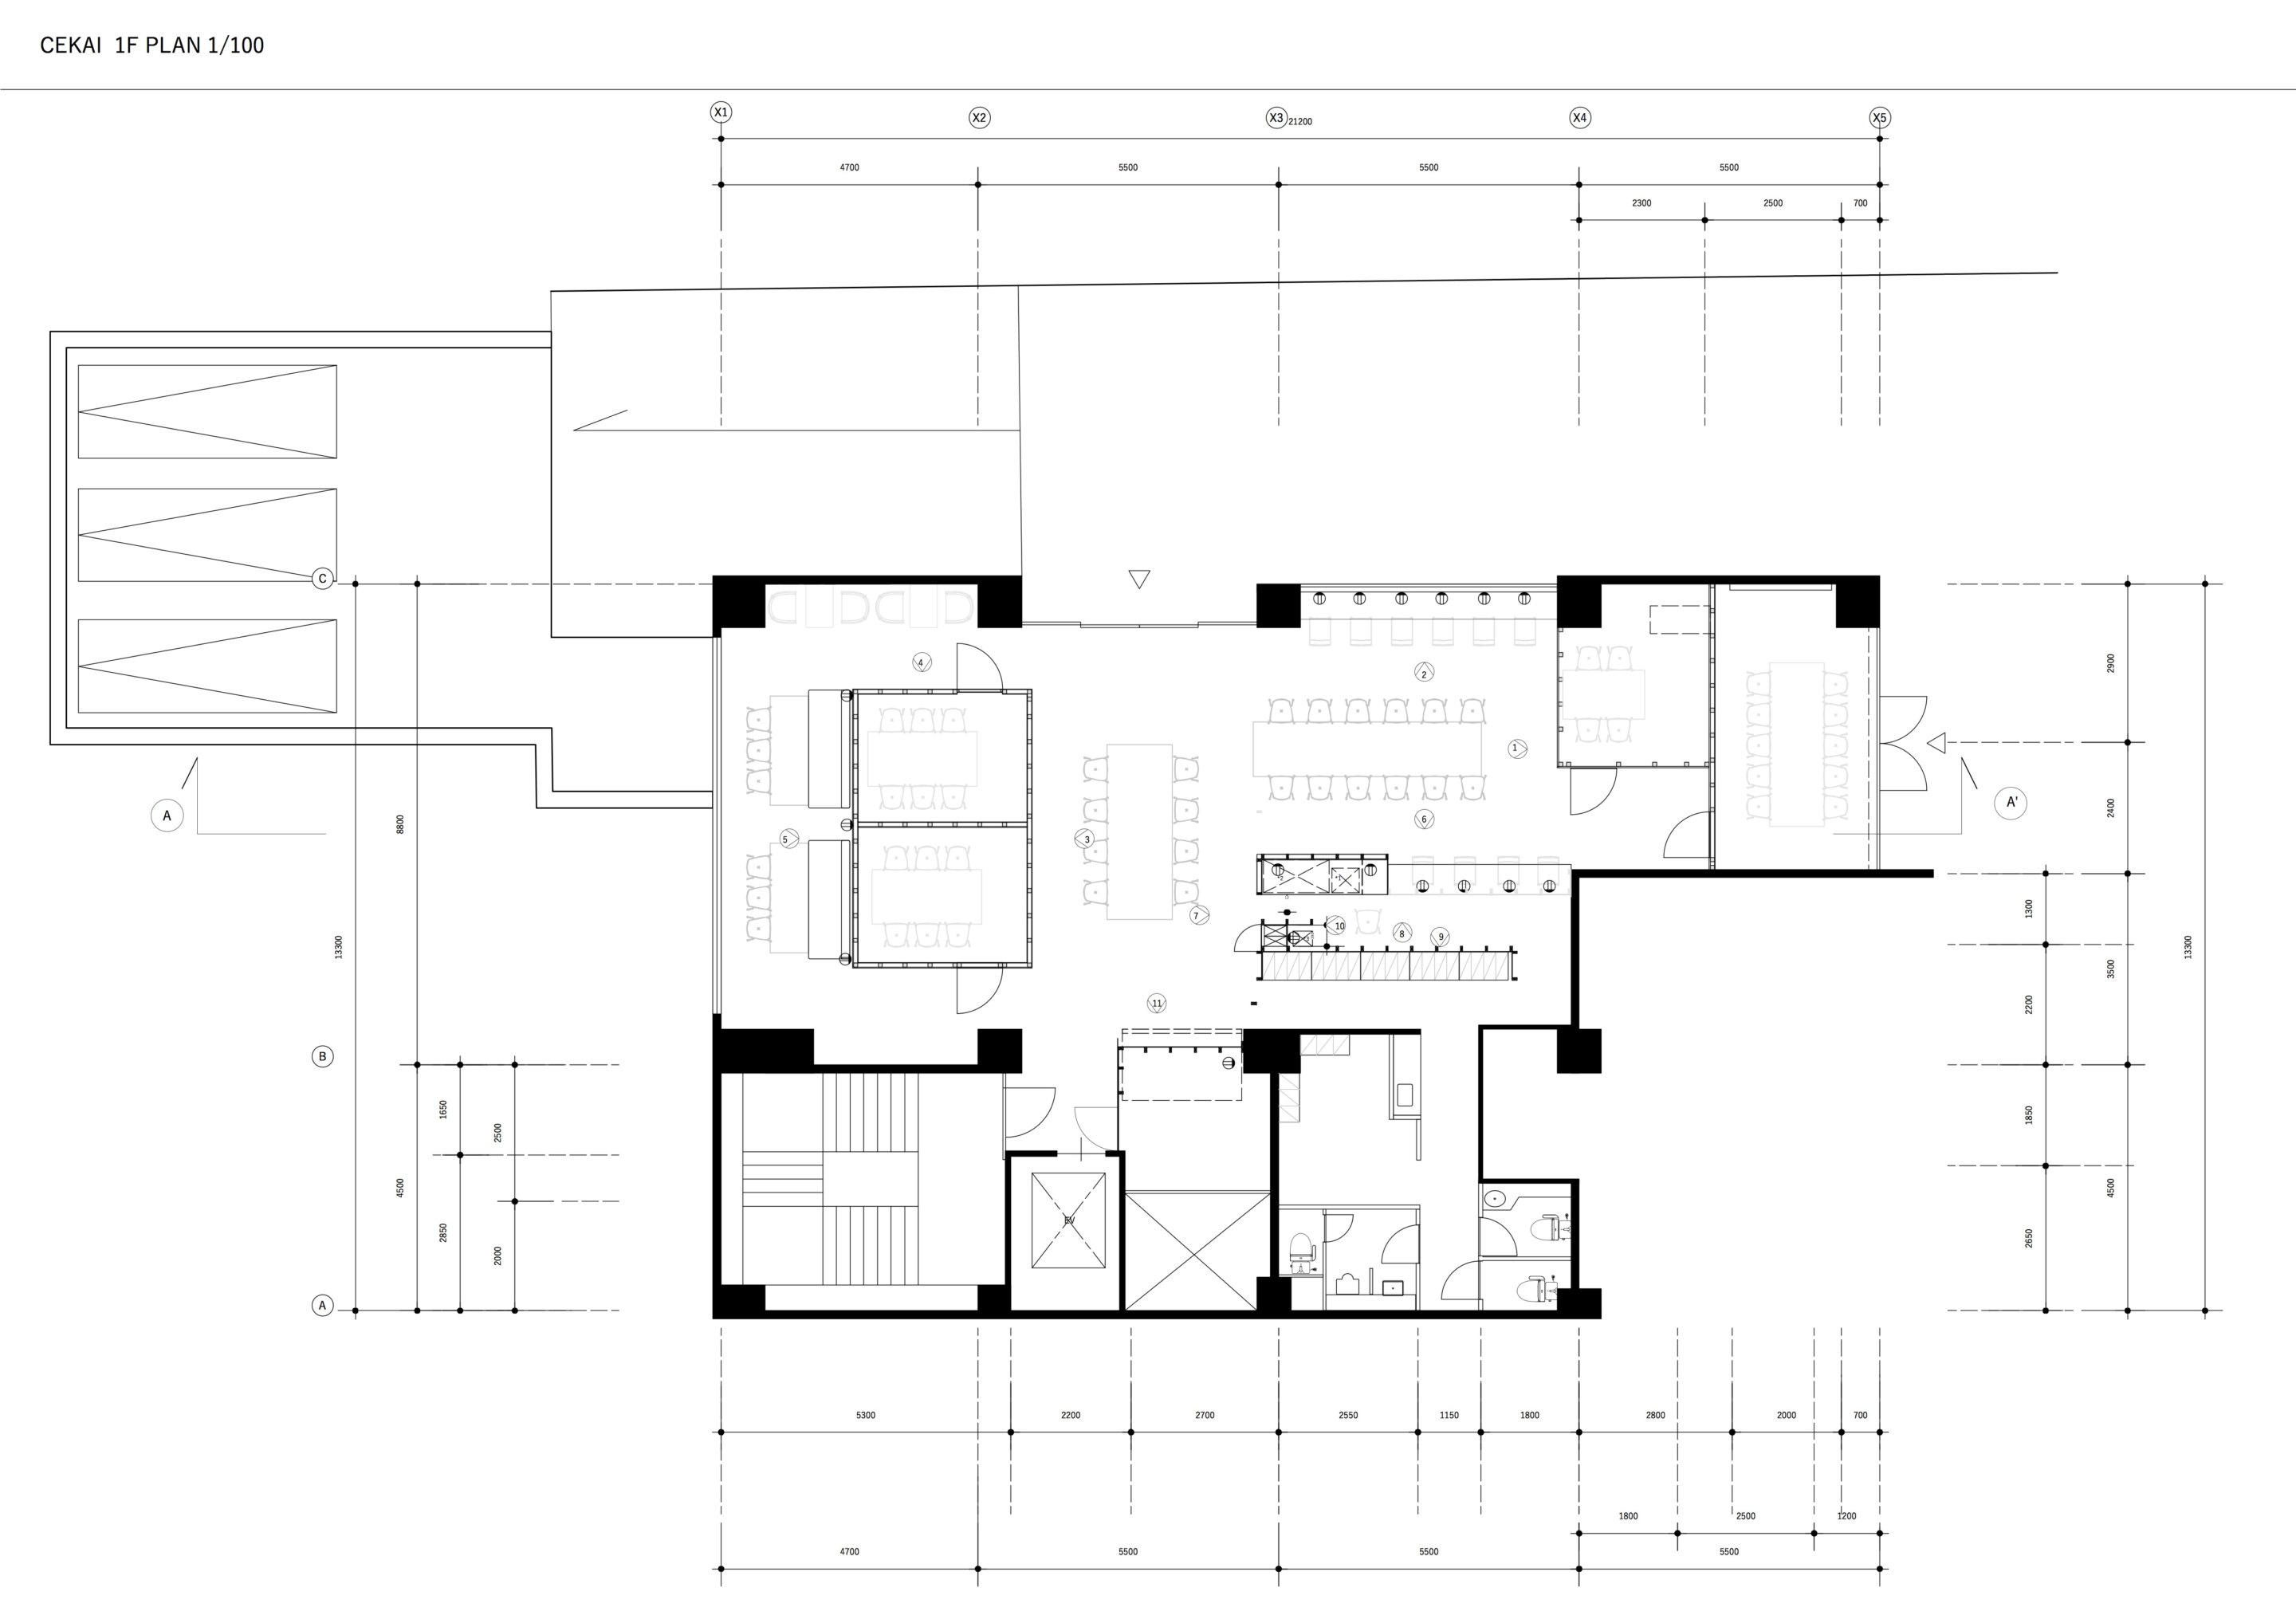 CEKAI_architectureplan1